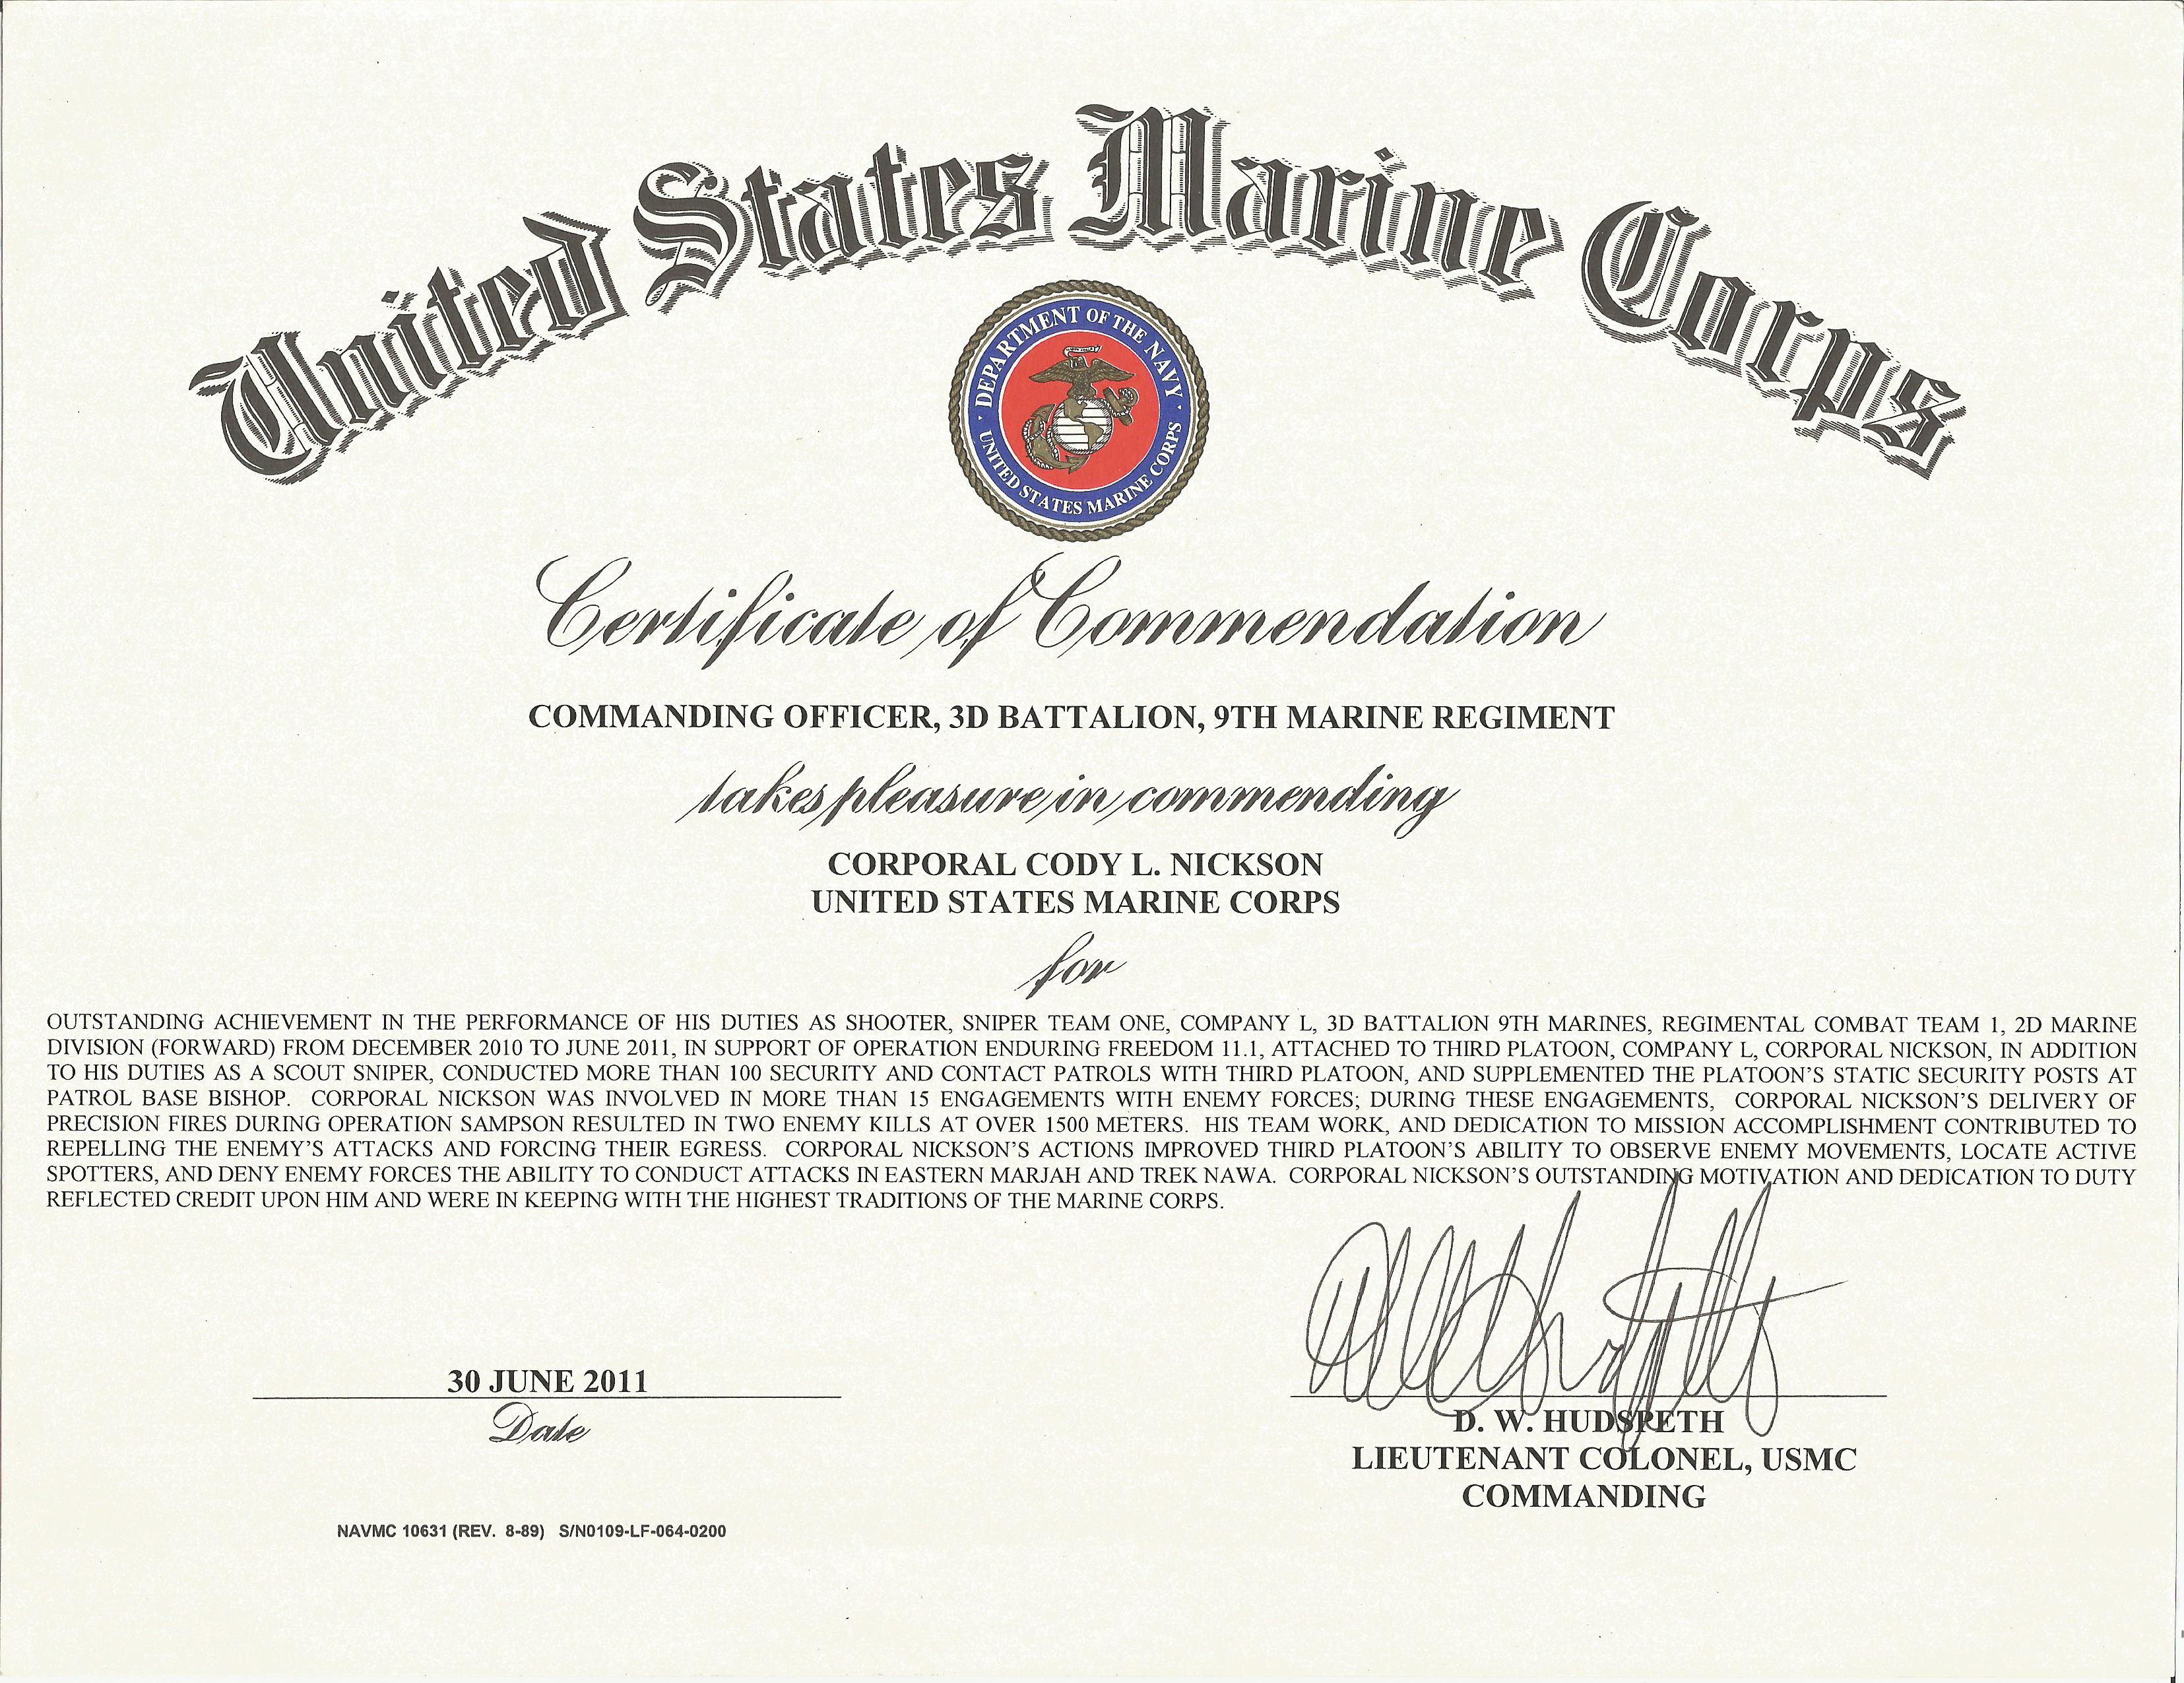 file mc 2011 06 30 certificate of commendation afghanistan sniper te